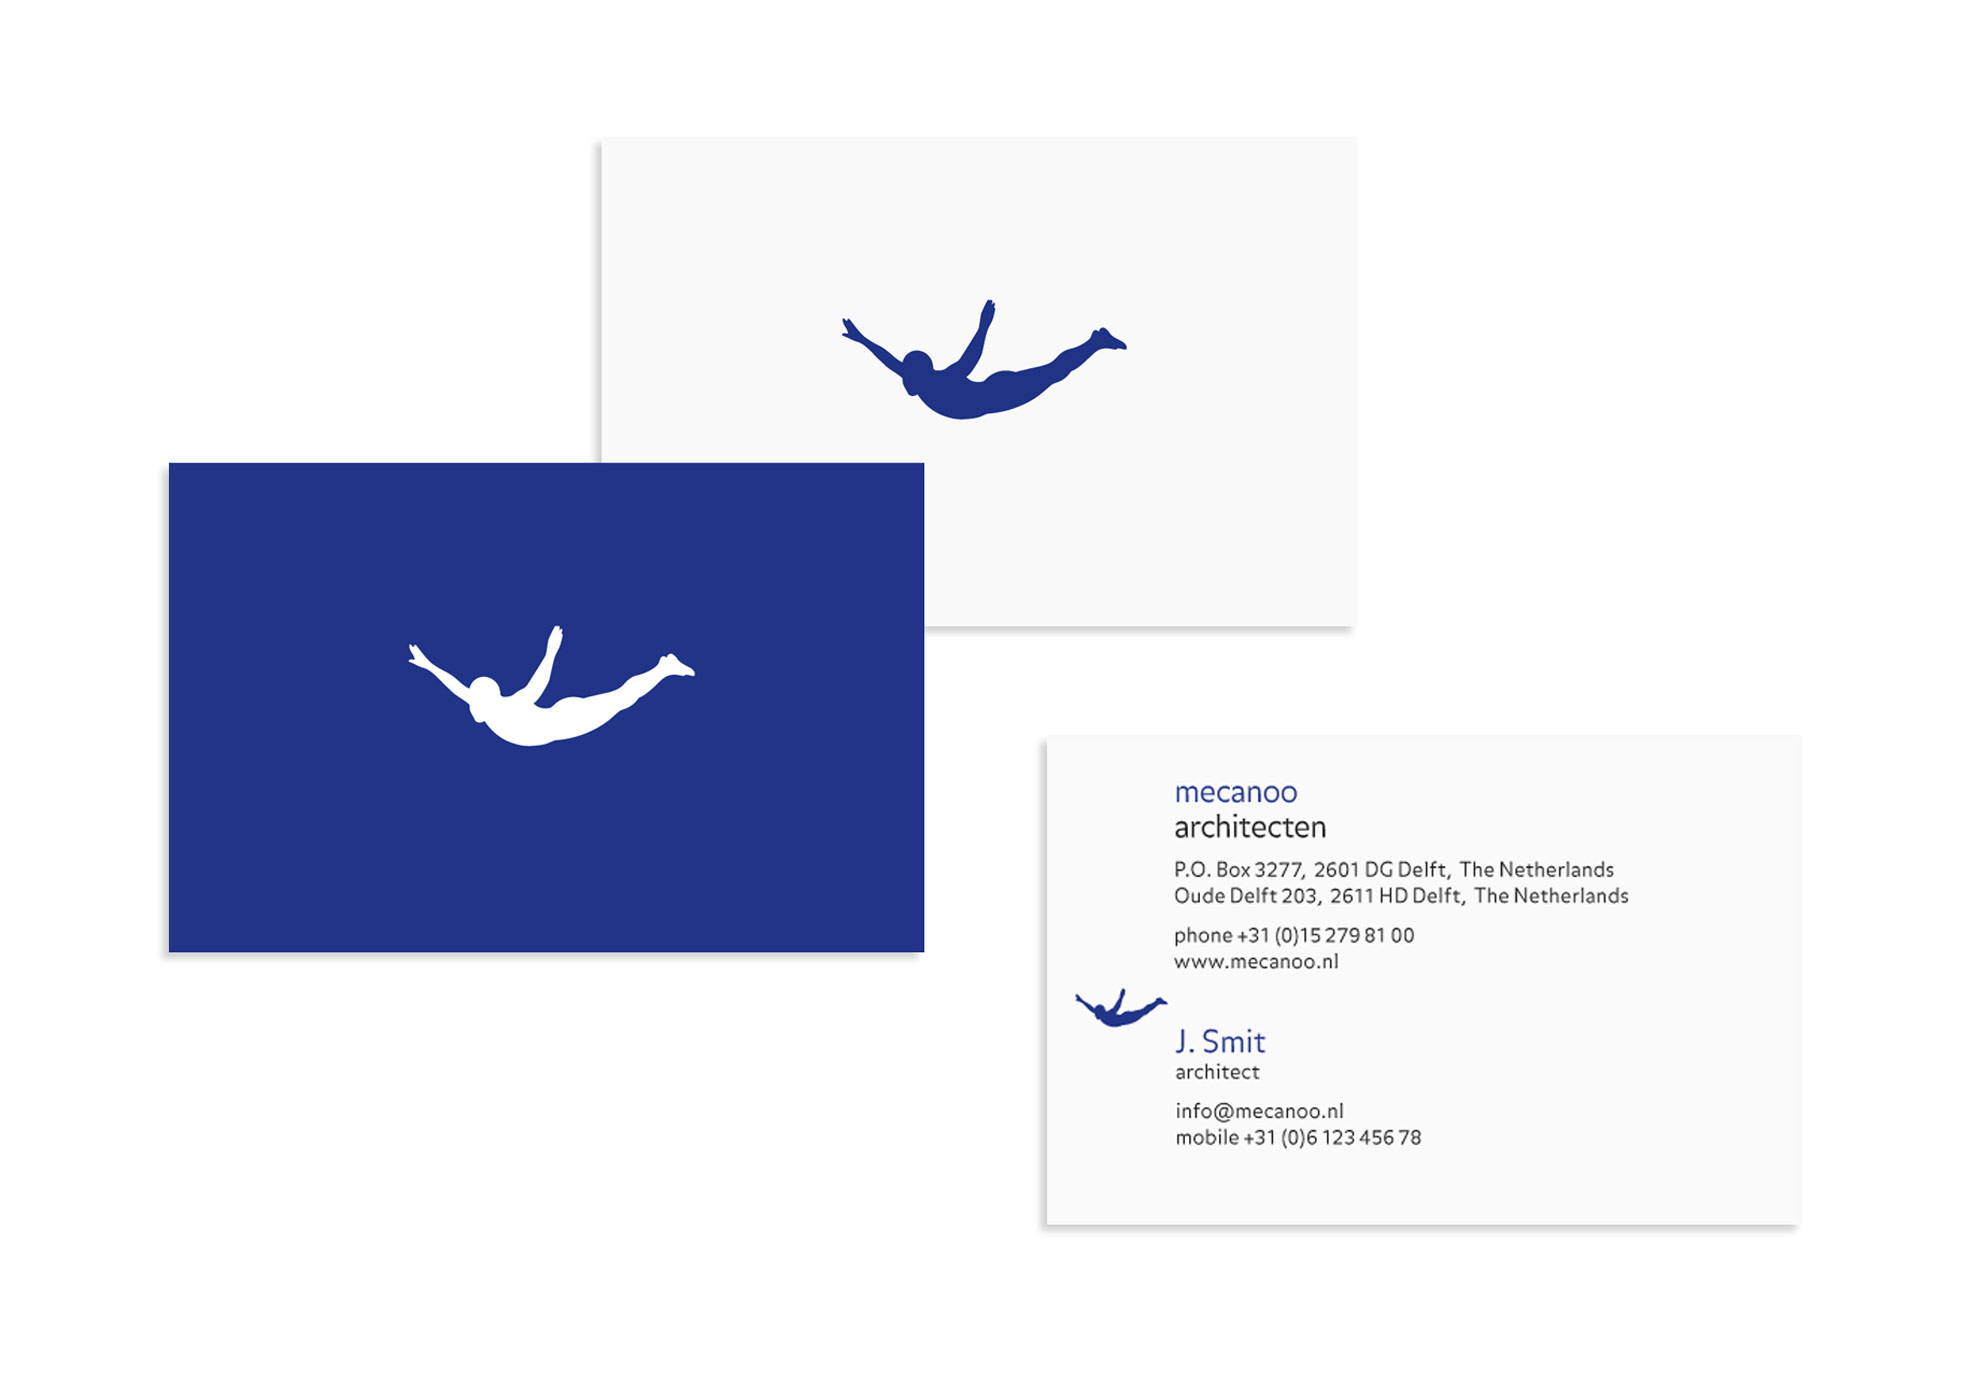 mecanoo, businesscard, identity design